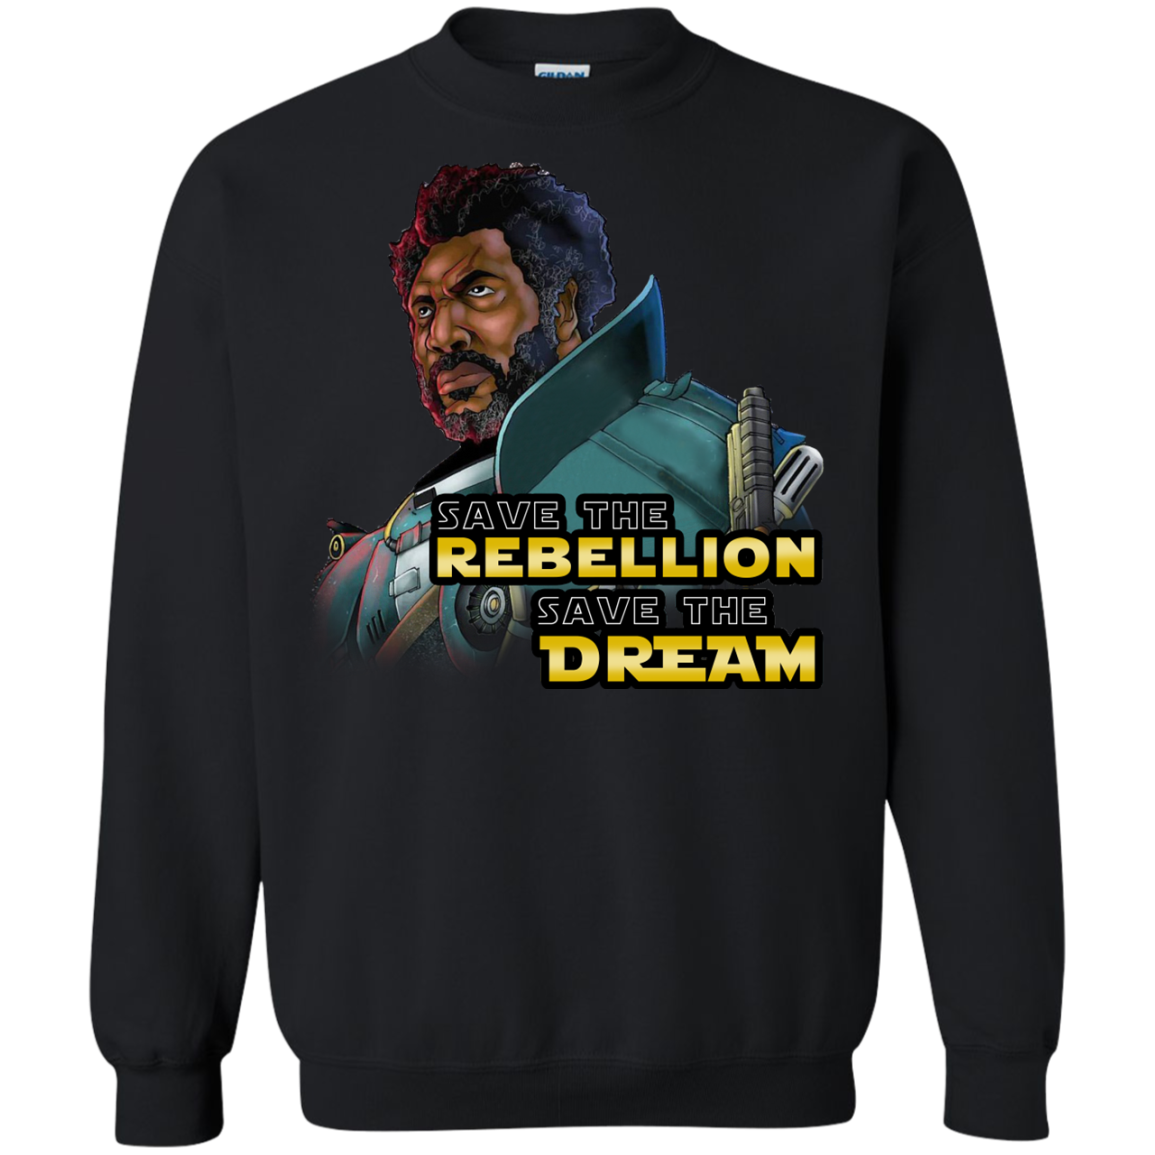 Save The Rebellion Star Wars Rogue One T shirts And Hoodies